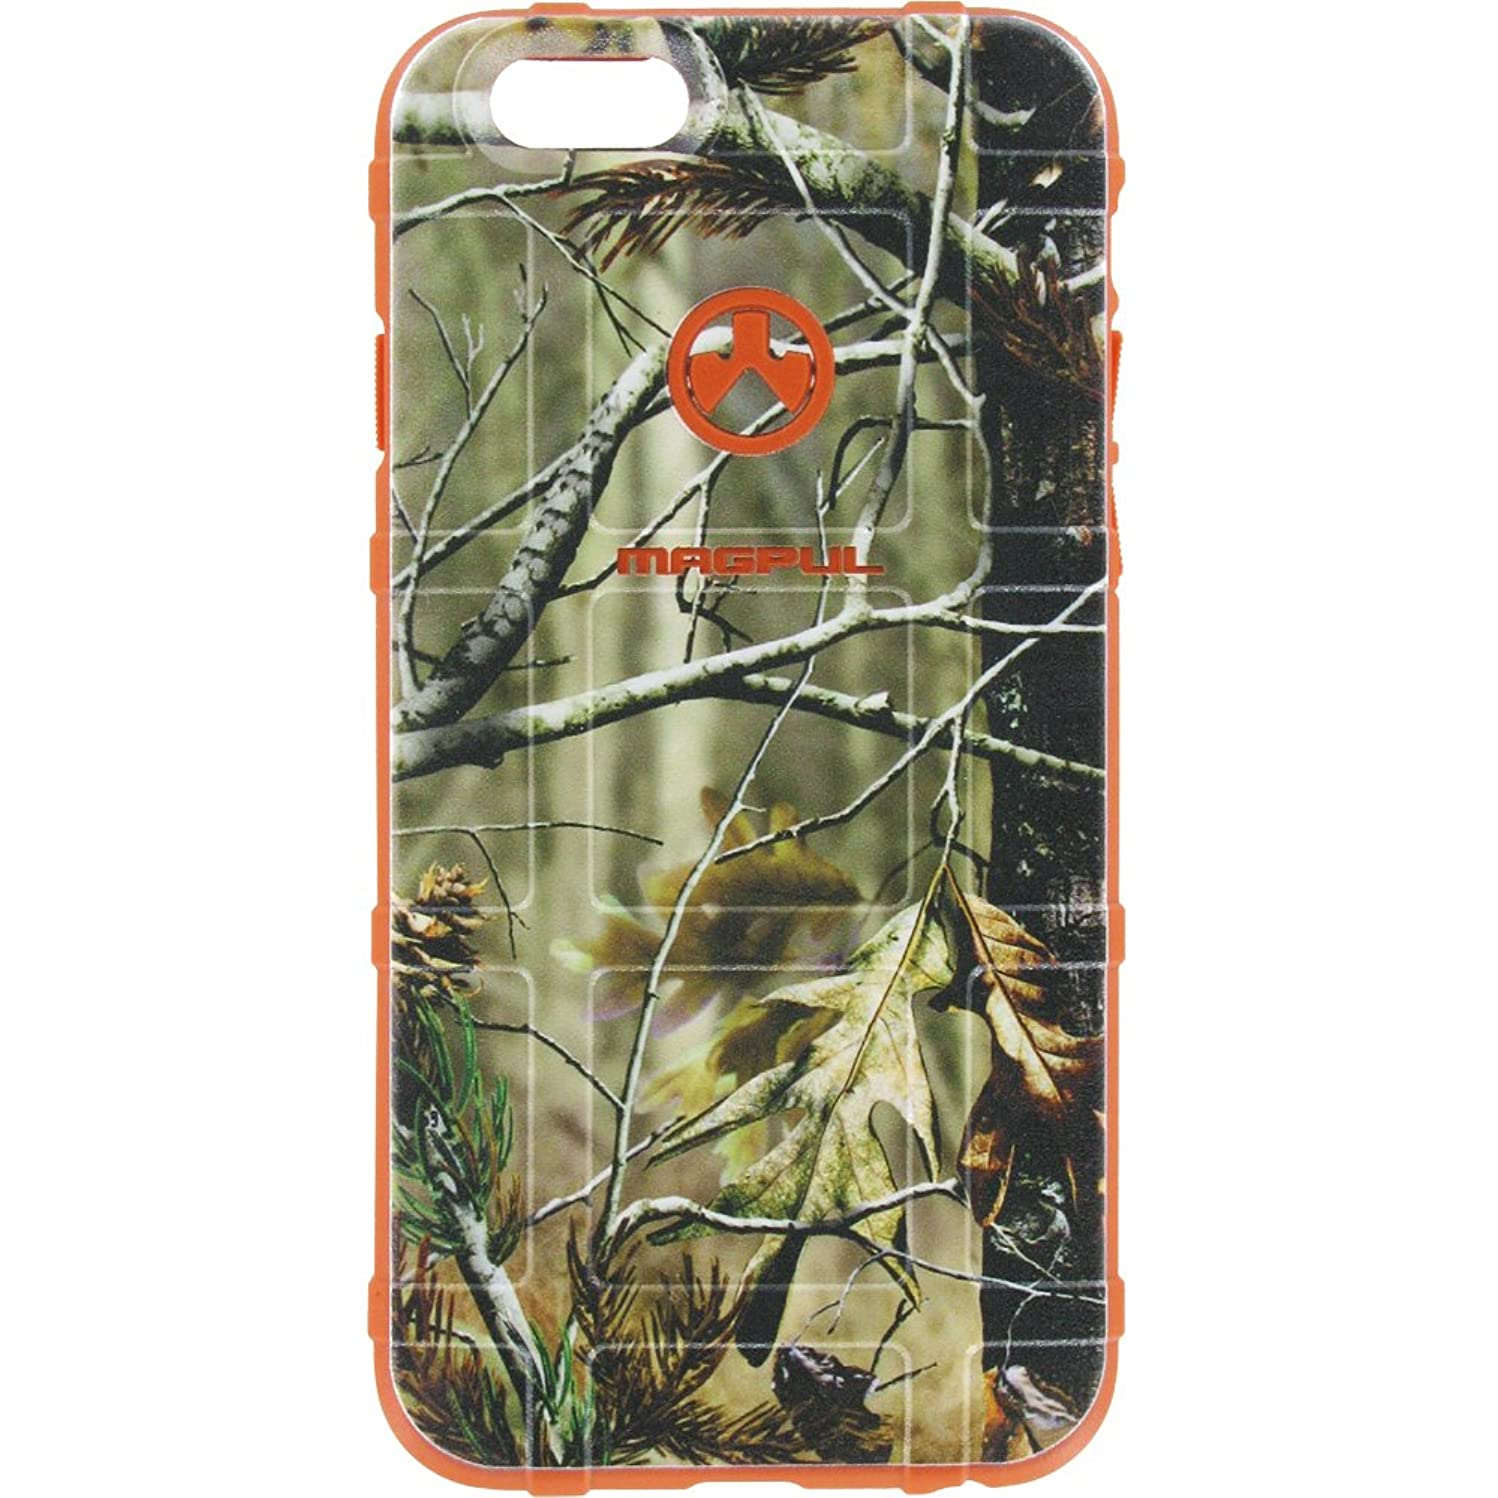 EGO Tactical Limited Edition Design UV-Printed onto a MAG849 Field Case Compatible with Apple iPhone 7 + Plus, 8 + Plus, 7+, 8+ Real Tree, Over Orange